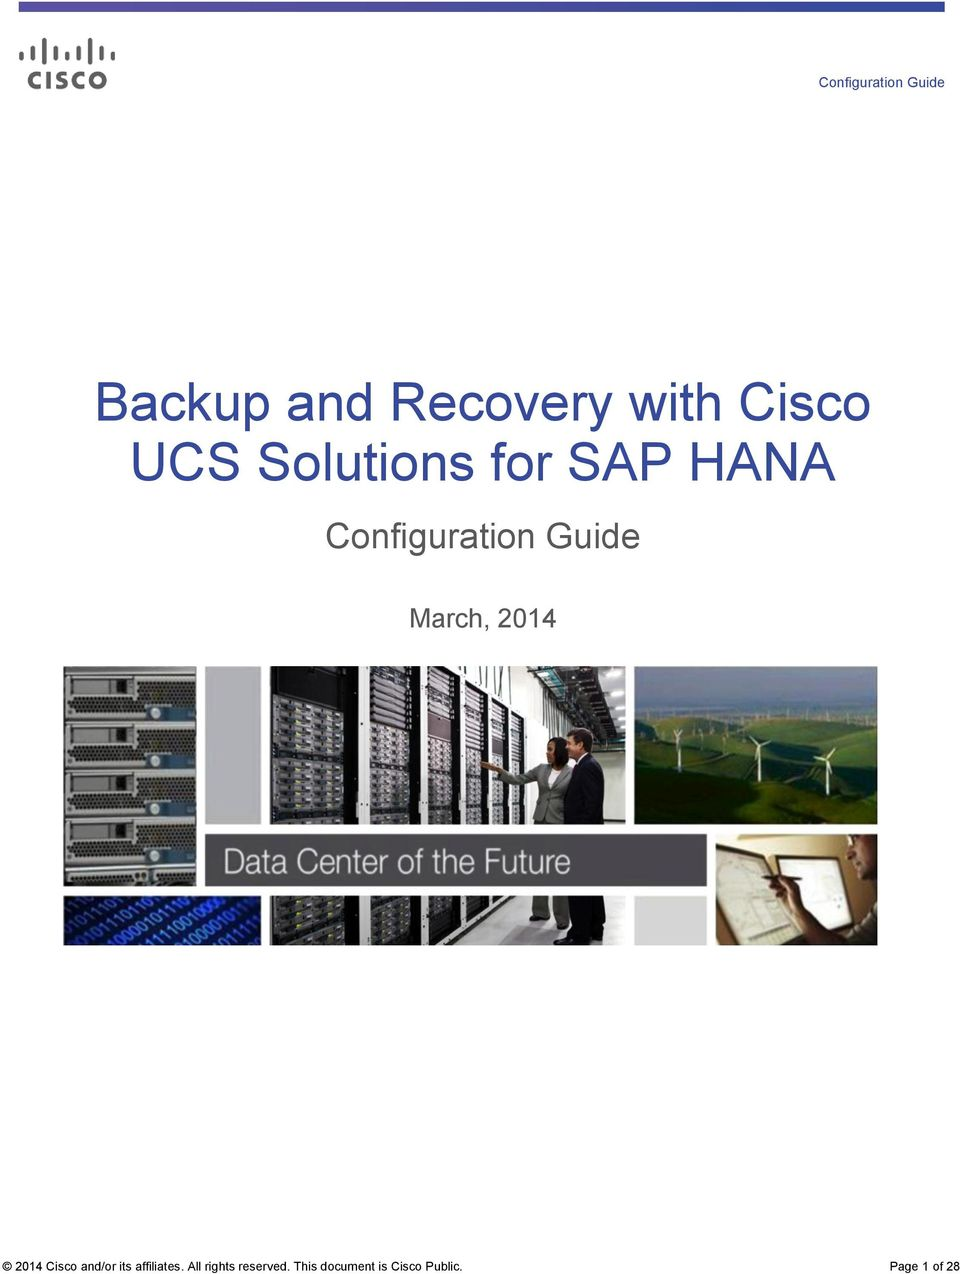 Backup and Recovery with Cisco UCS Solutions for SAP HANA - PDF